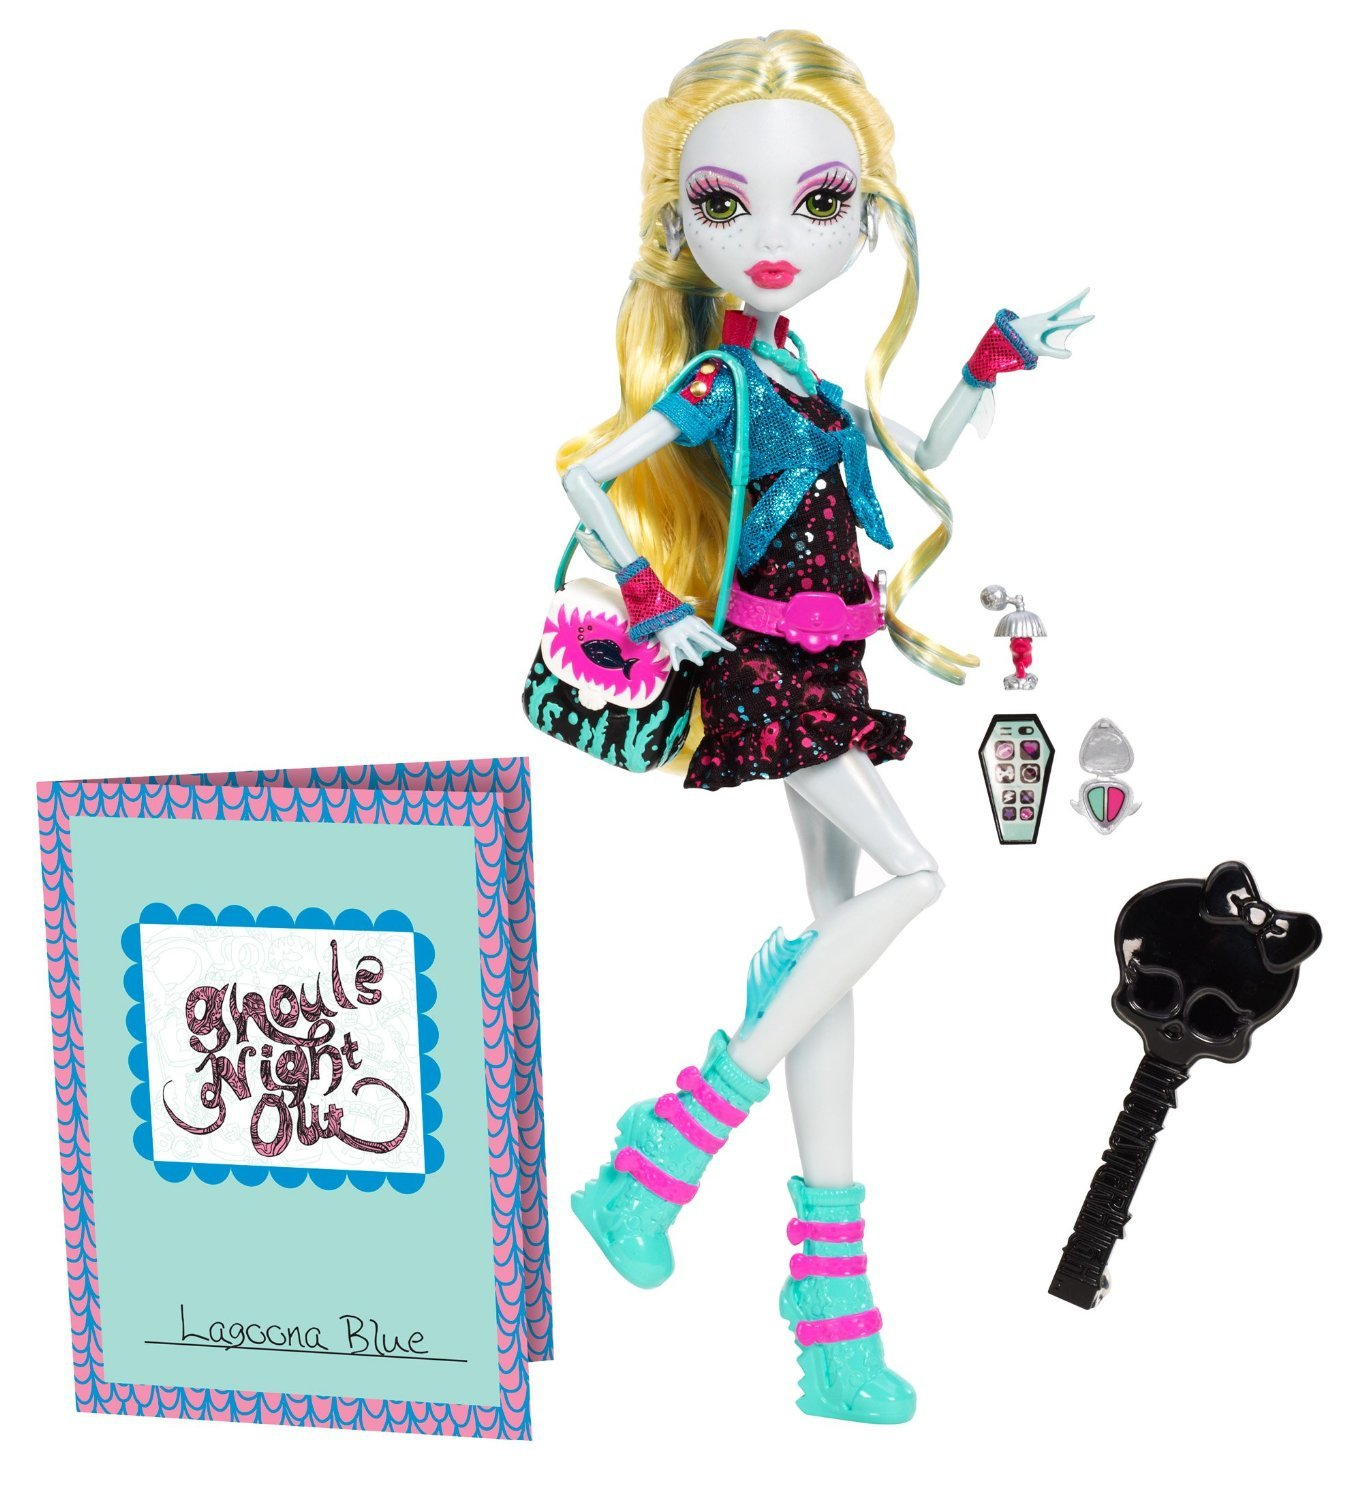 Monster High Ghouls Night Out Doll Lagoona Blue Doll only 999